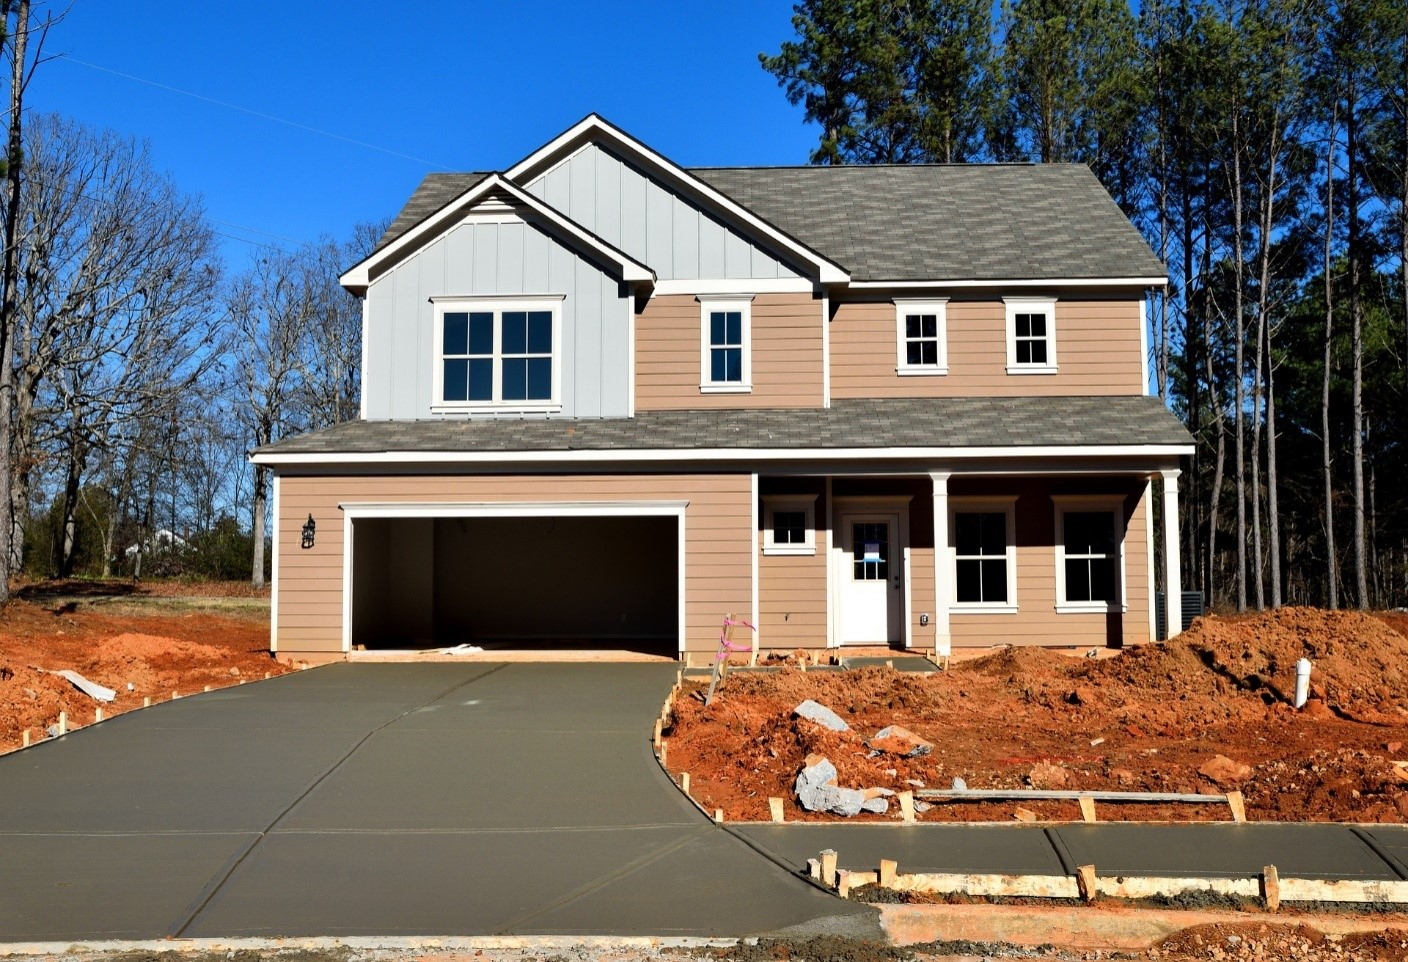 image - 9 Reasons Why You Should Hire Professionals for Garage Door Service